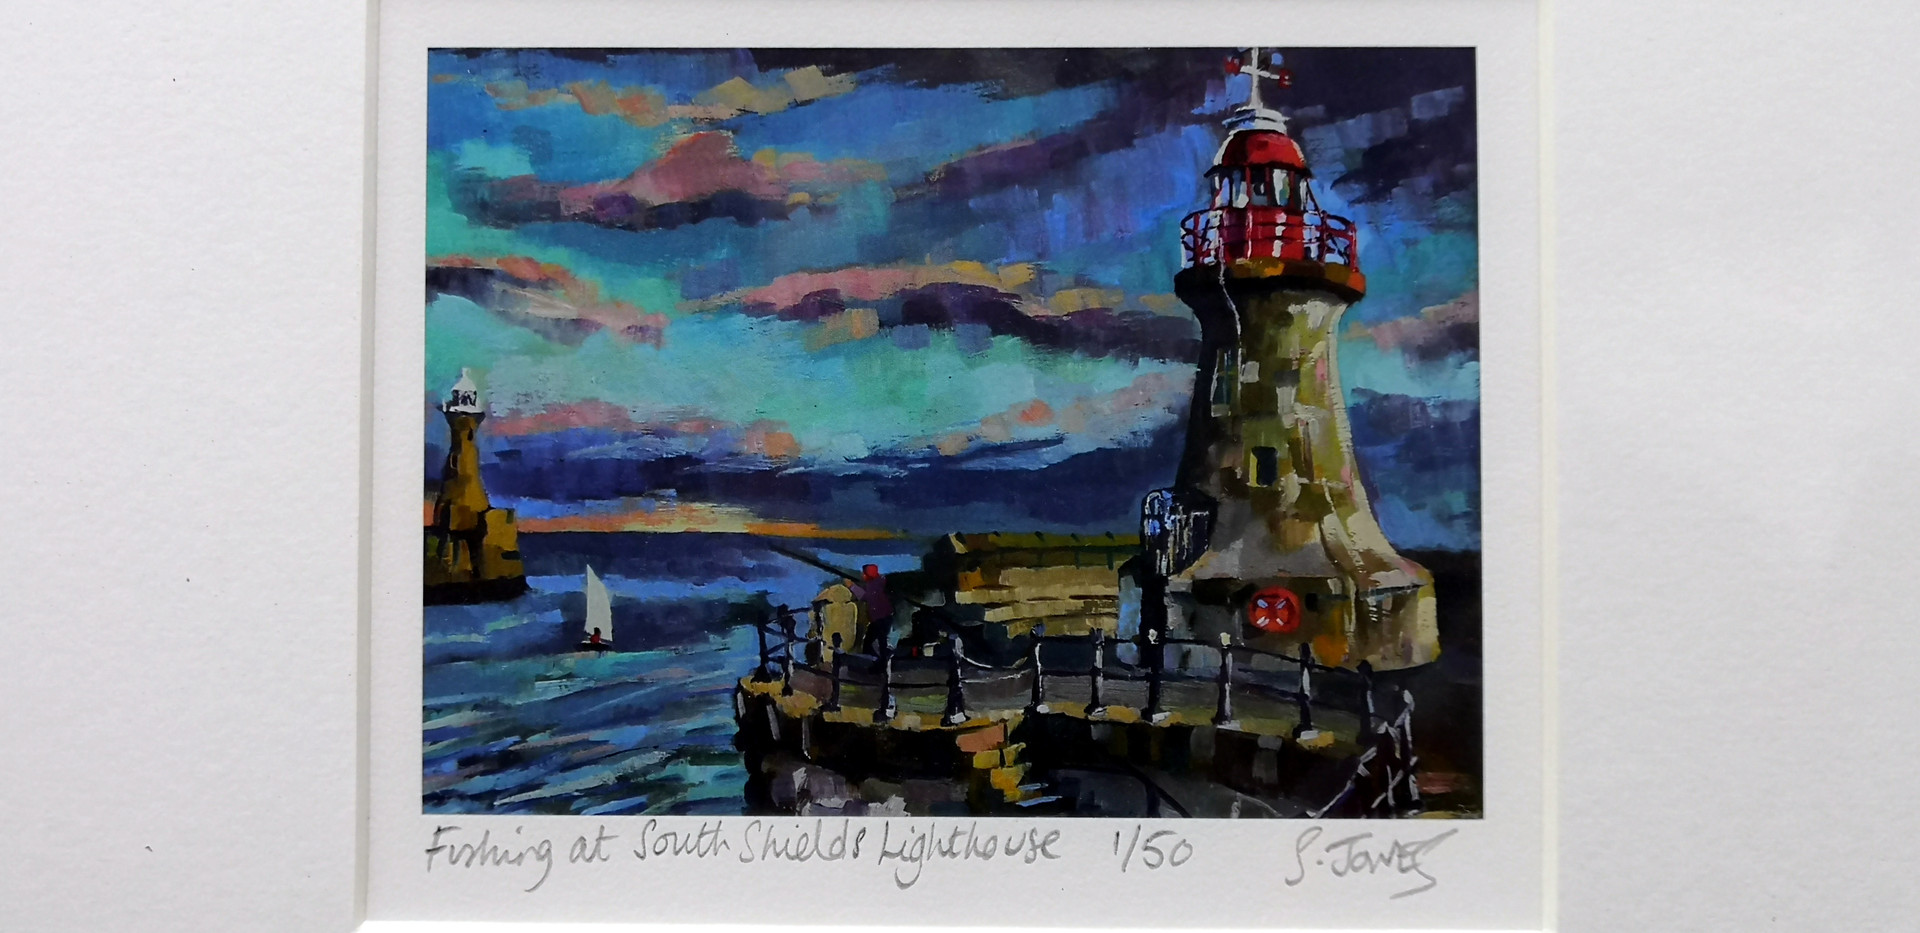 Stuart Jones - 'Fishing at South Sheilds Lighthouse' mounted giclee print